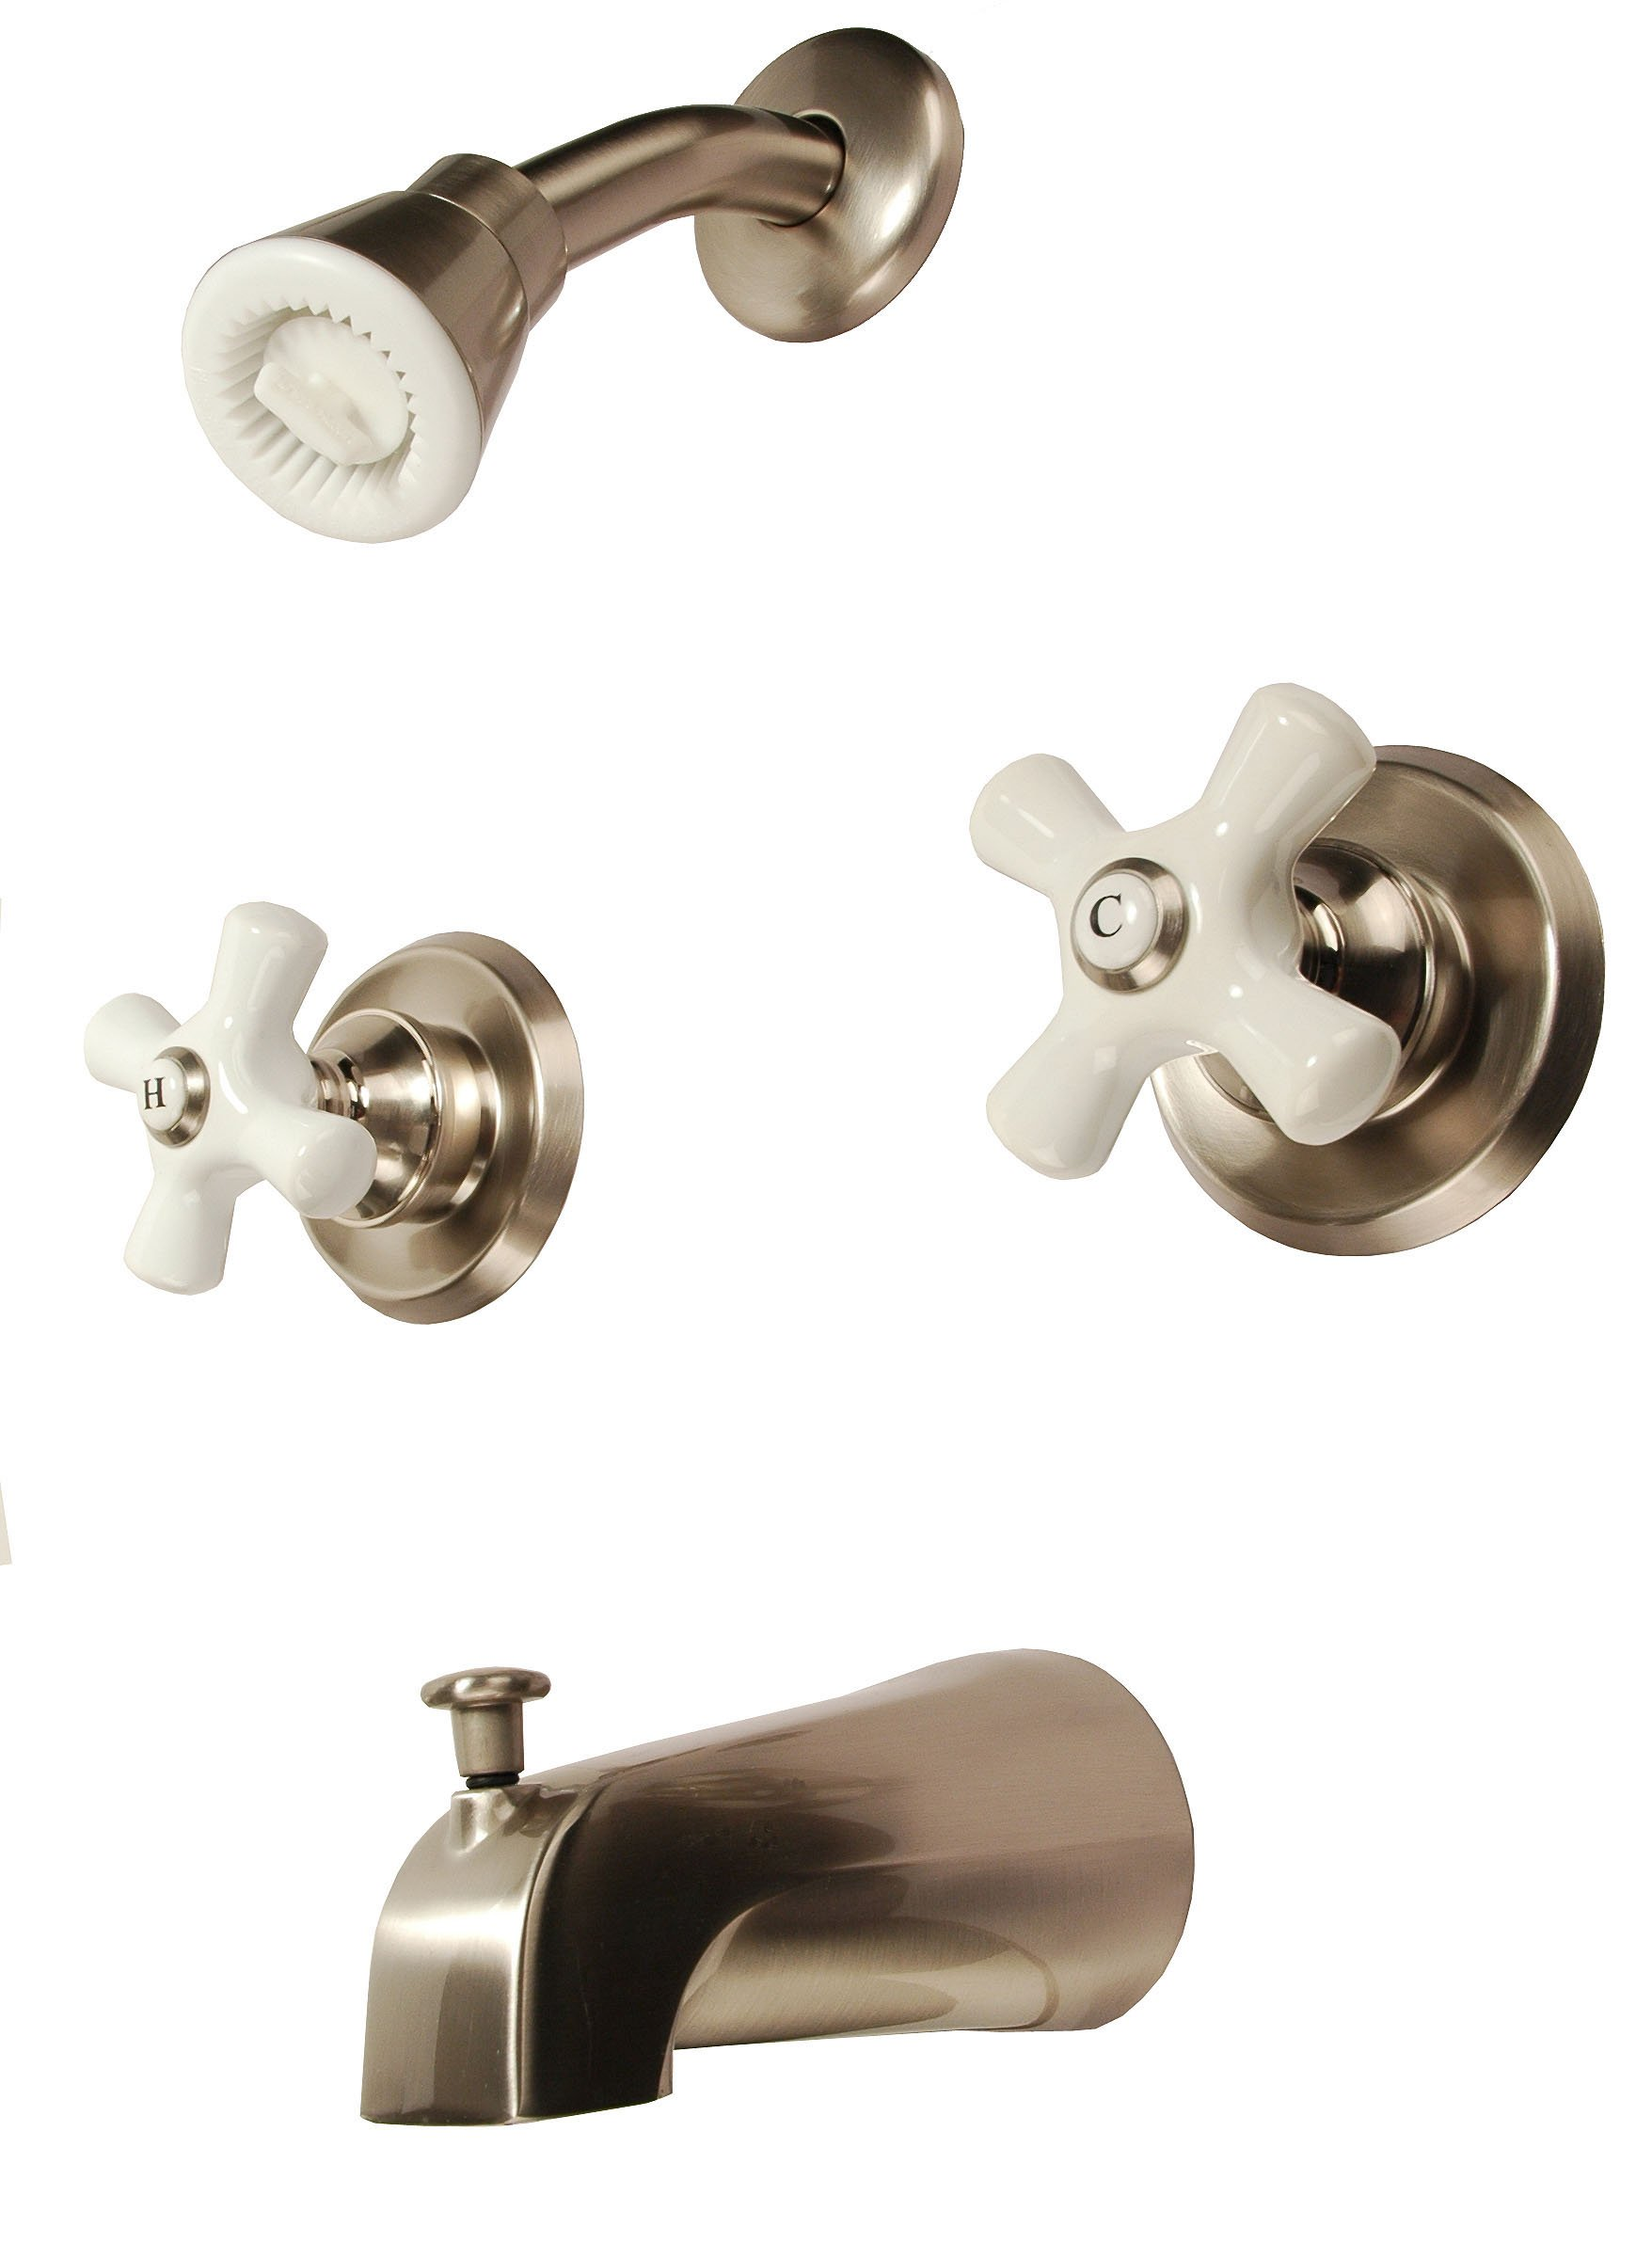 8'' Two-handle Tub and Shower Faucets, Satin Nickel Finish, Washerless, Porcelain Handle - Plumb USA 34582sn